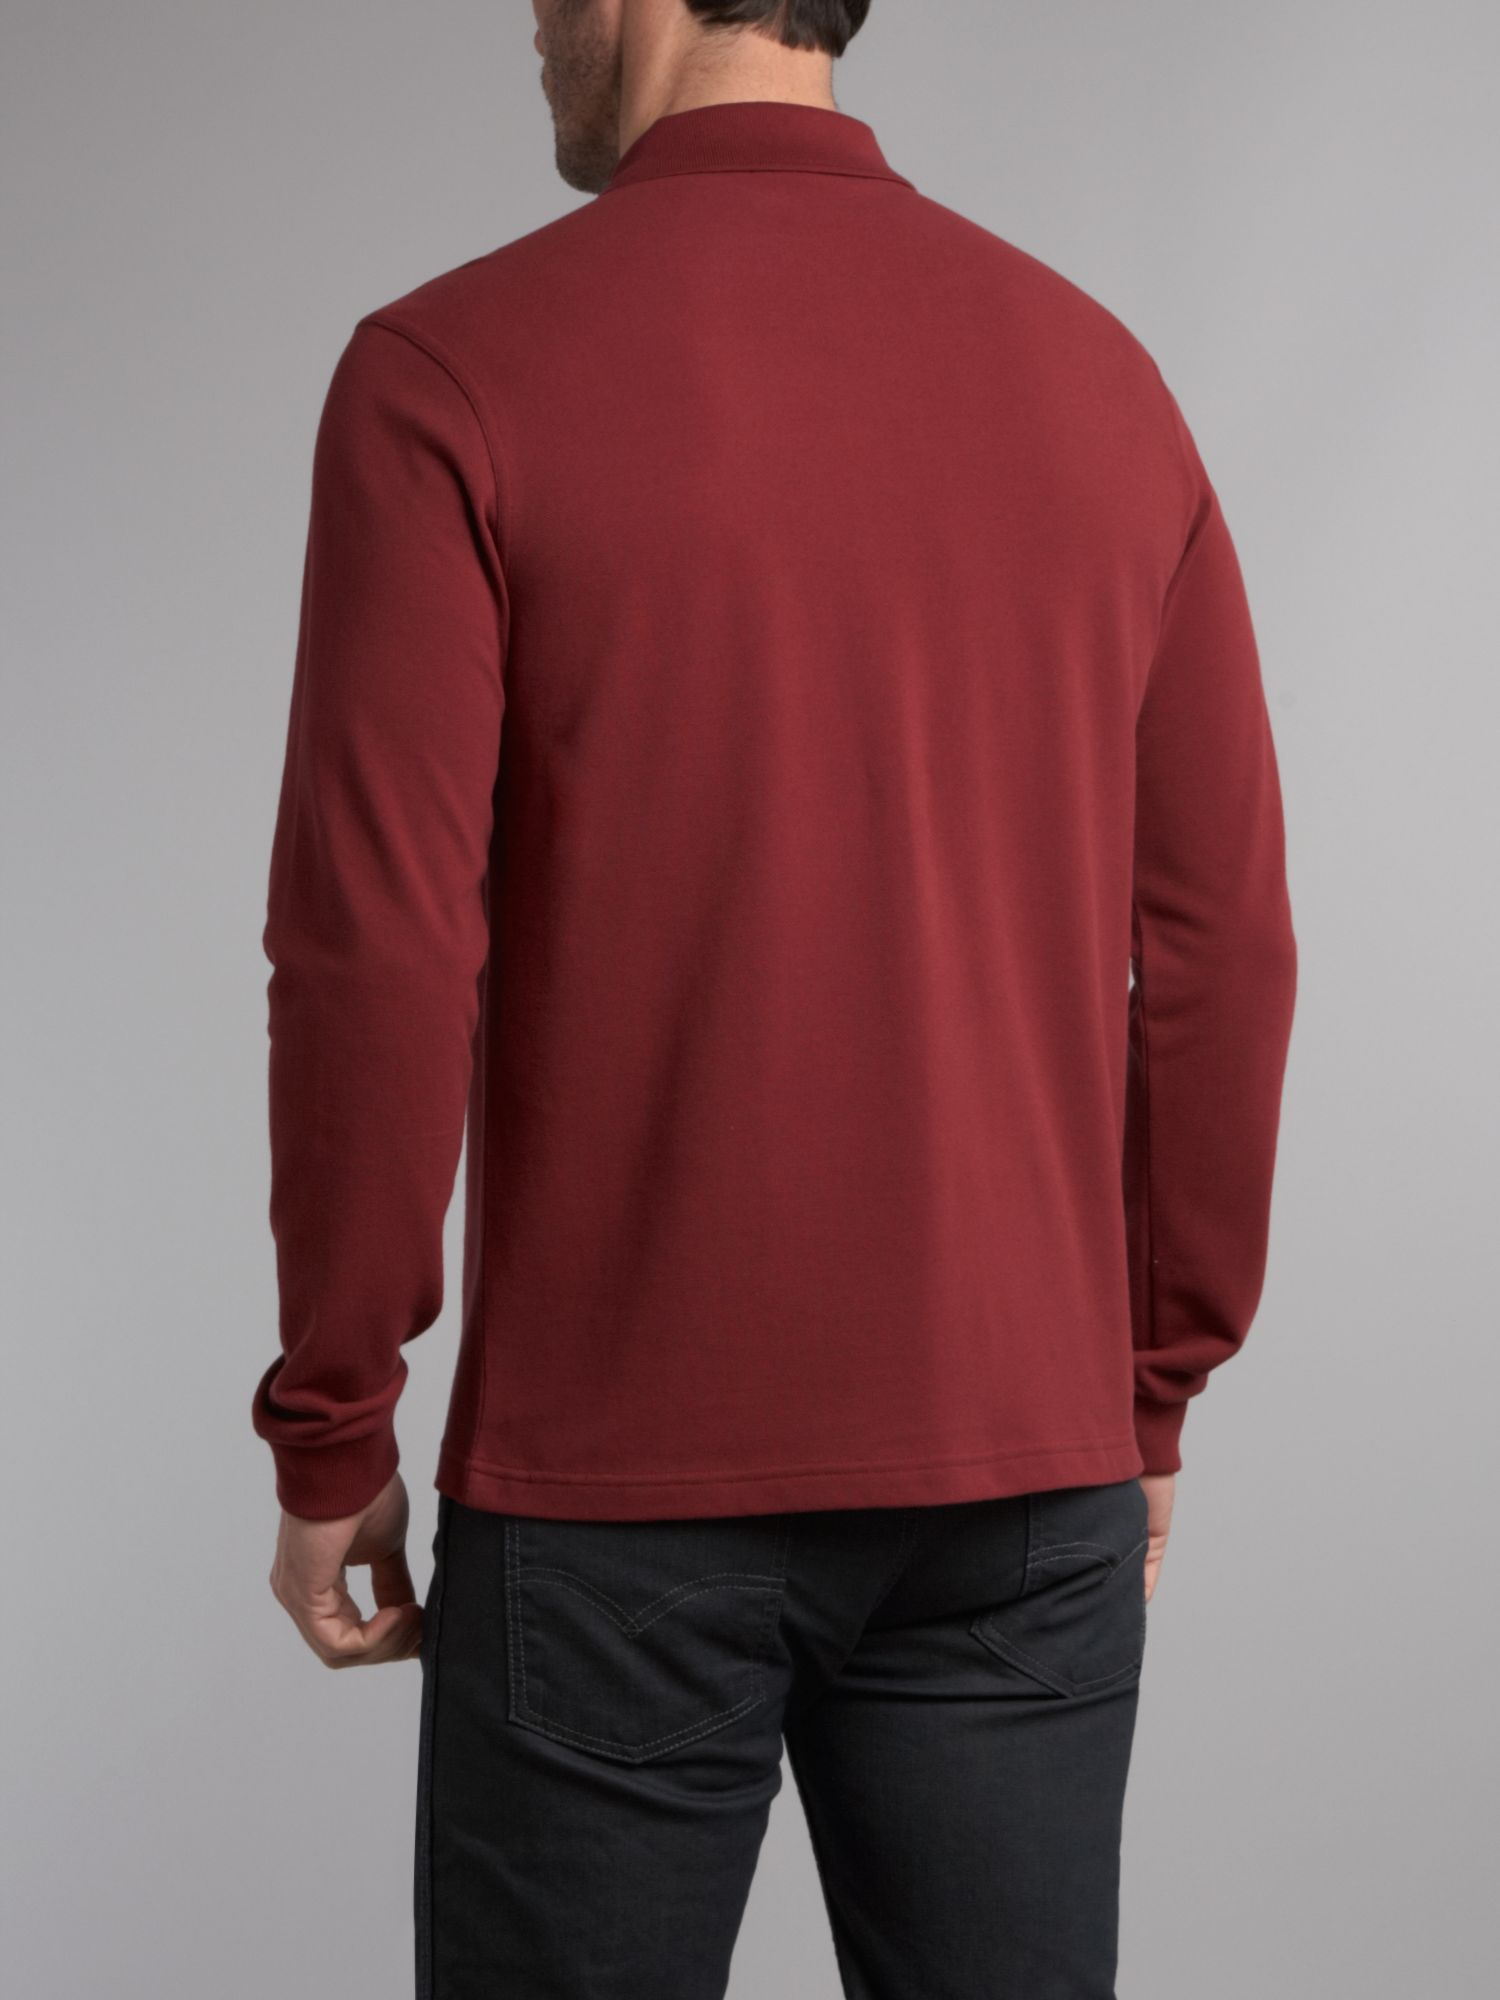 fred perry slim fit long sleeve polo shirt in red for men. Black Bedroom Furniture Sets. Home Design Ideas